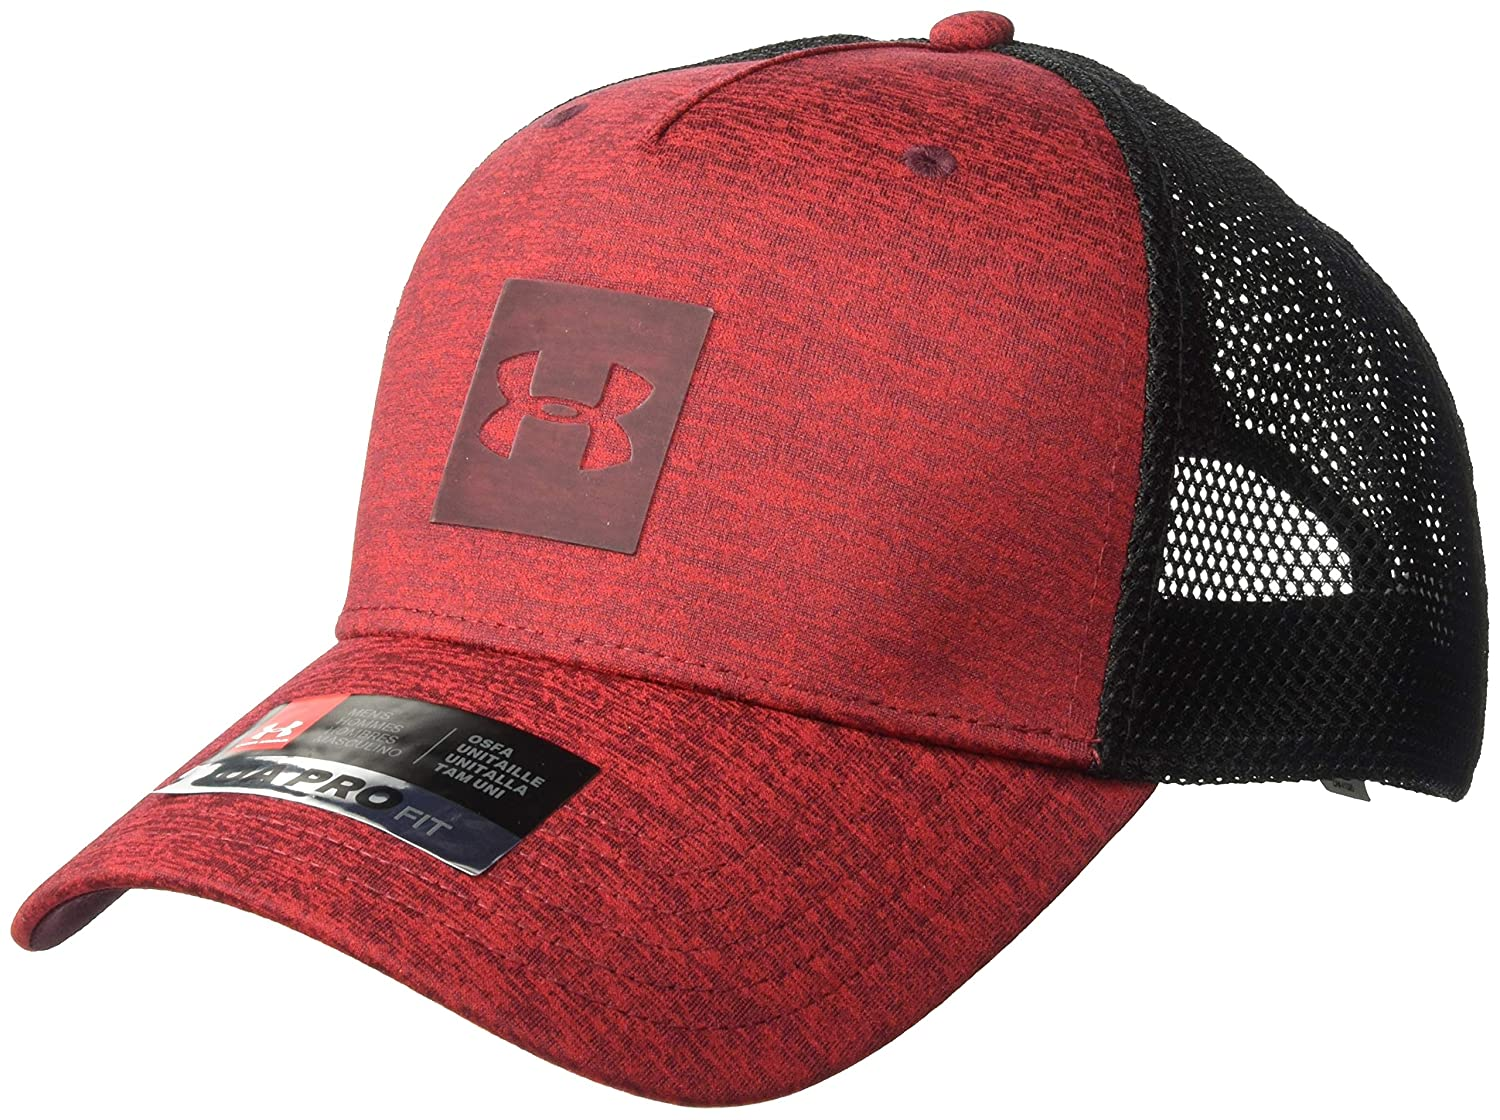 pretty nice f2f9b 8ae4e Amazon.com  Under Armour Men s Twist Trucker Cap, Aruba Red  Cardinal, One  Size Fits All  Clothing